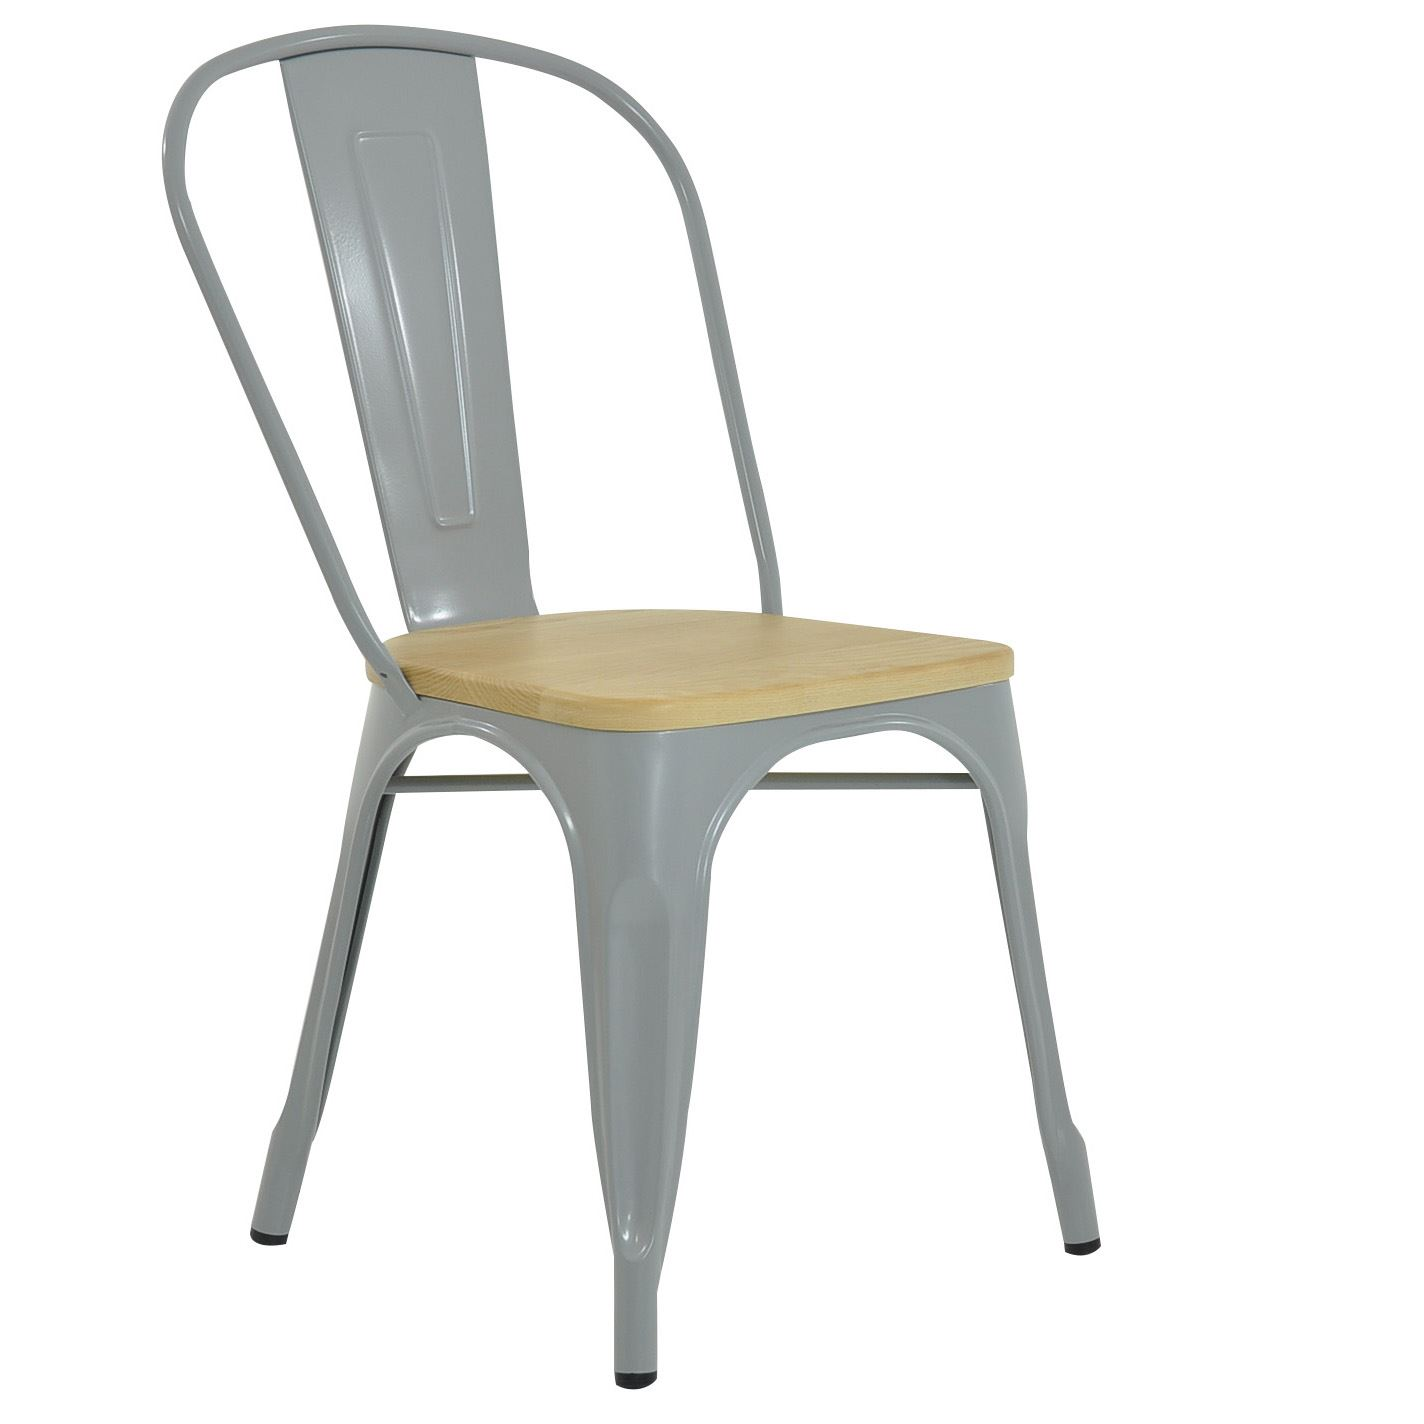 tolix style chair rustic bistro table and chairs xavier pauchard dining ebay